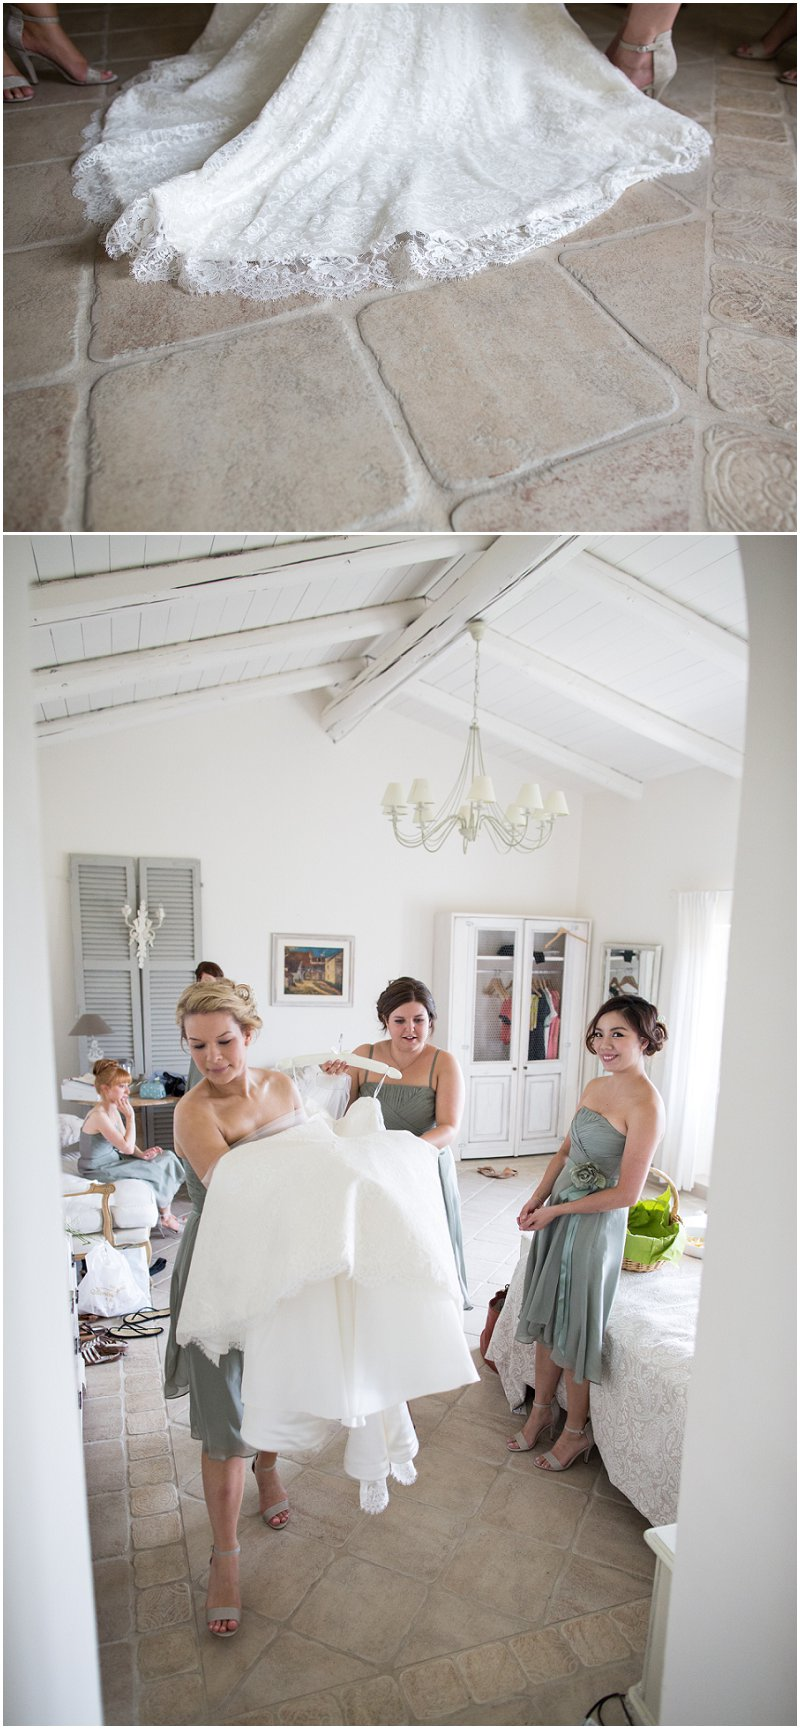 Bride gets ready to get into wedding dress